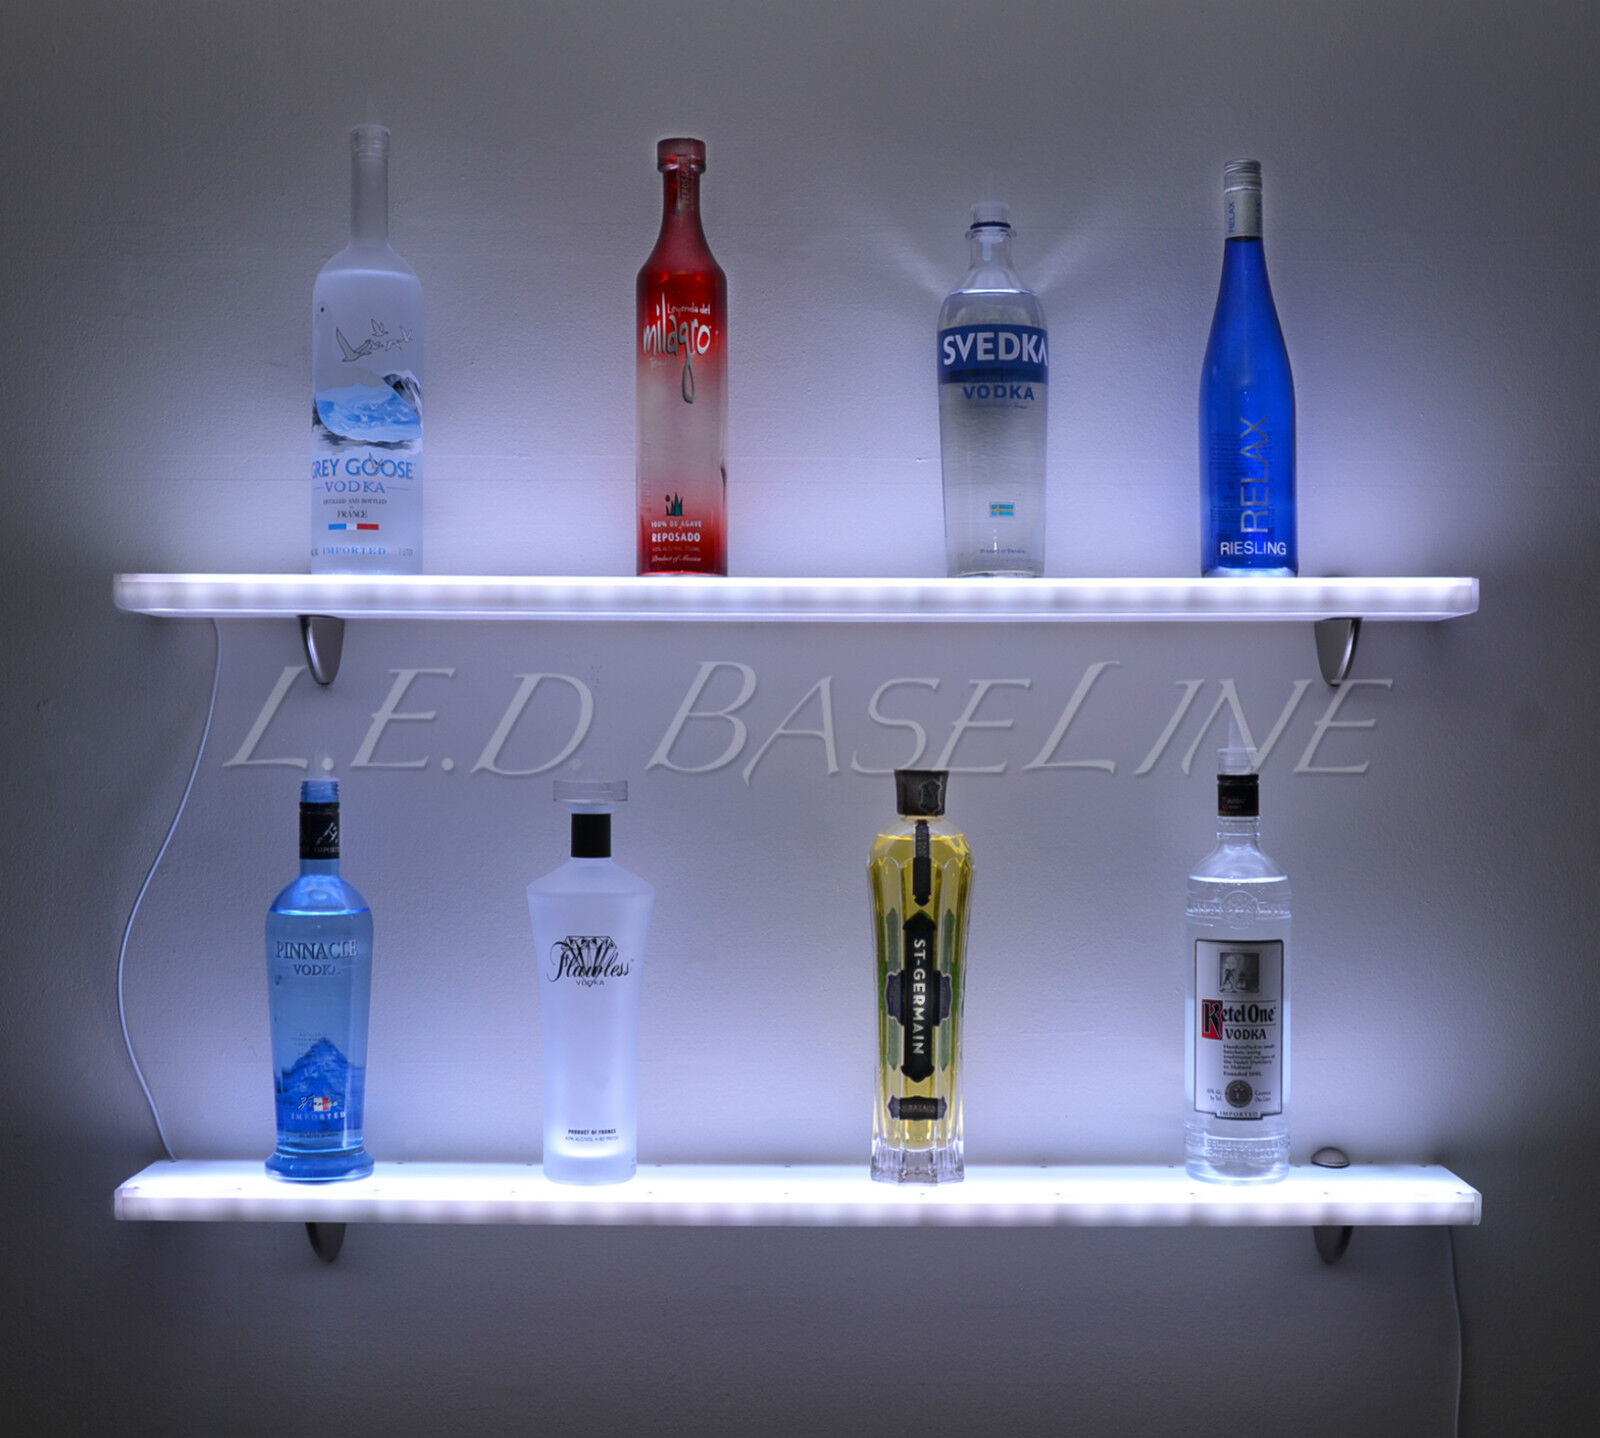 Watch likewise Lighted Shelves as well Solid Wood Liquor Cabi  Bar Wine Storage Rack And Glass Hanger Also Open Shelf With Bar Cabi s For Home Uk Plus Wine as well Mobila Din Butoaie in addition Led Bar Shelves Best Seller Collection. on light bar liquor shelf